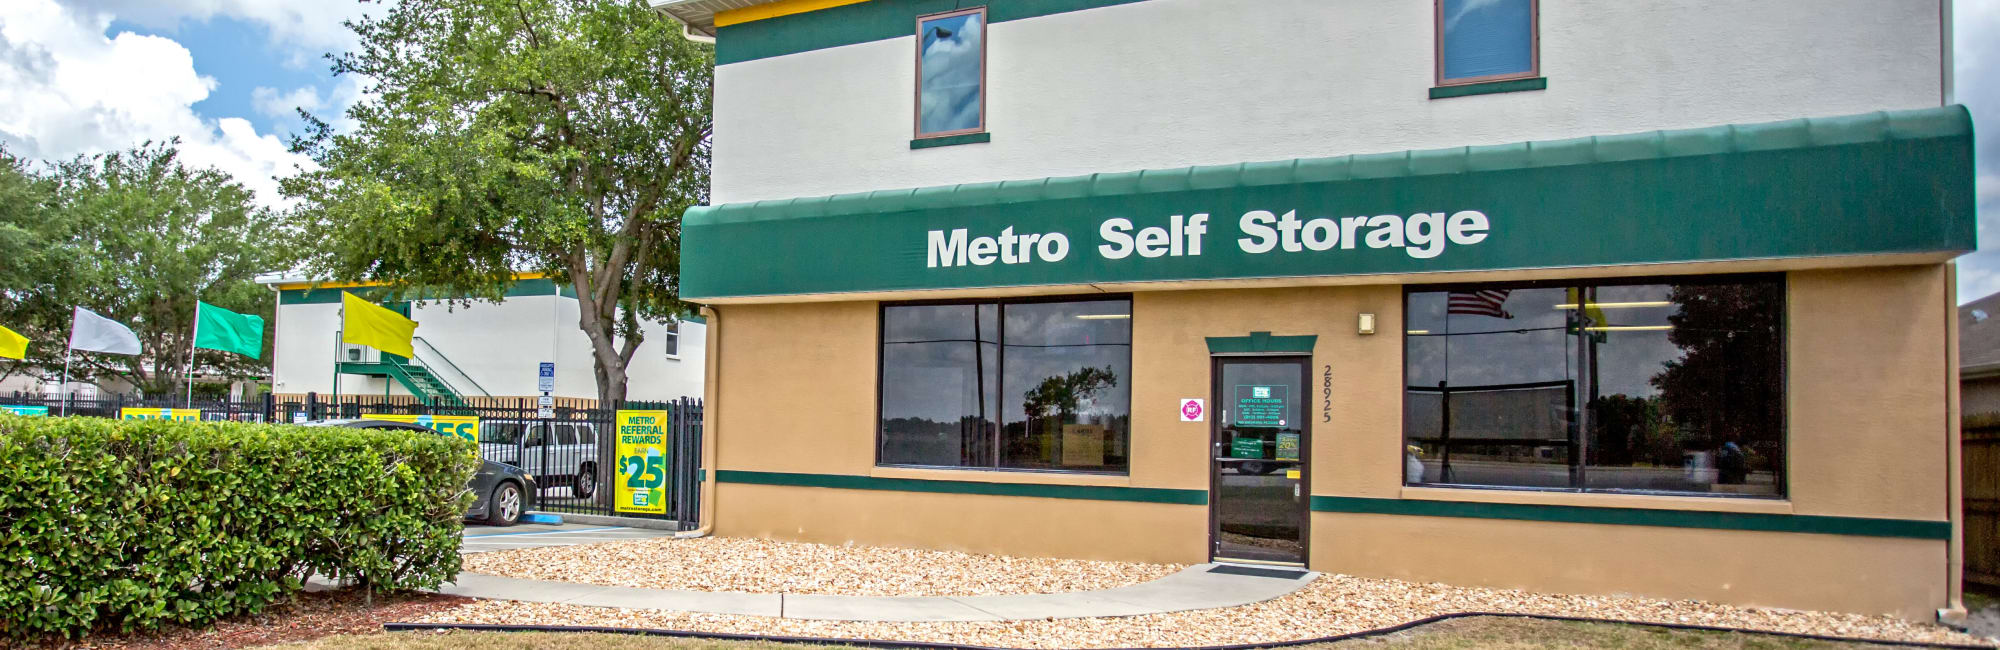 Metro Self Storage in Wesley Chapel, FL